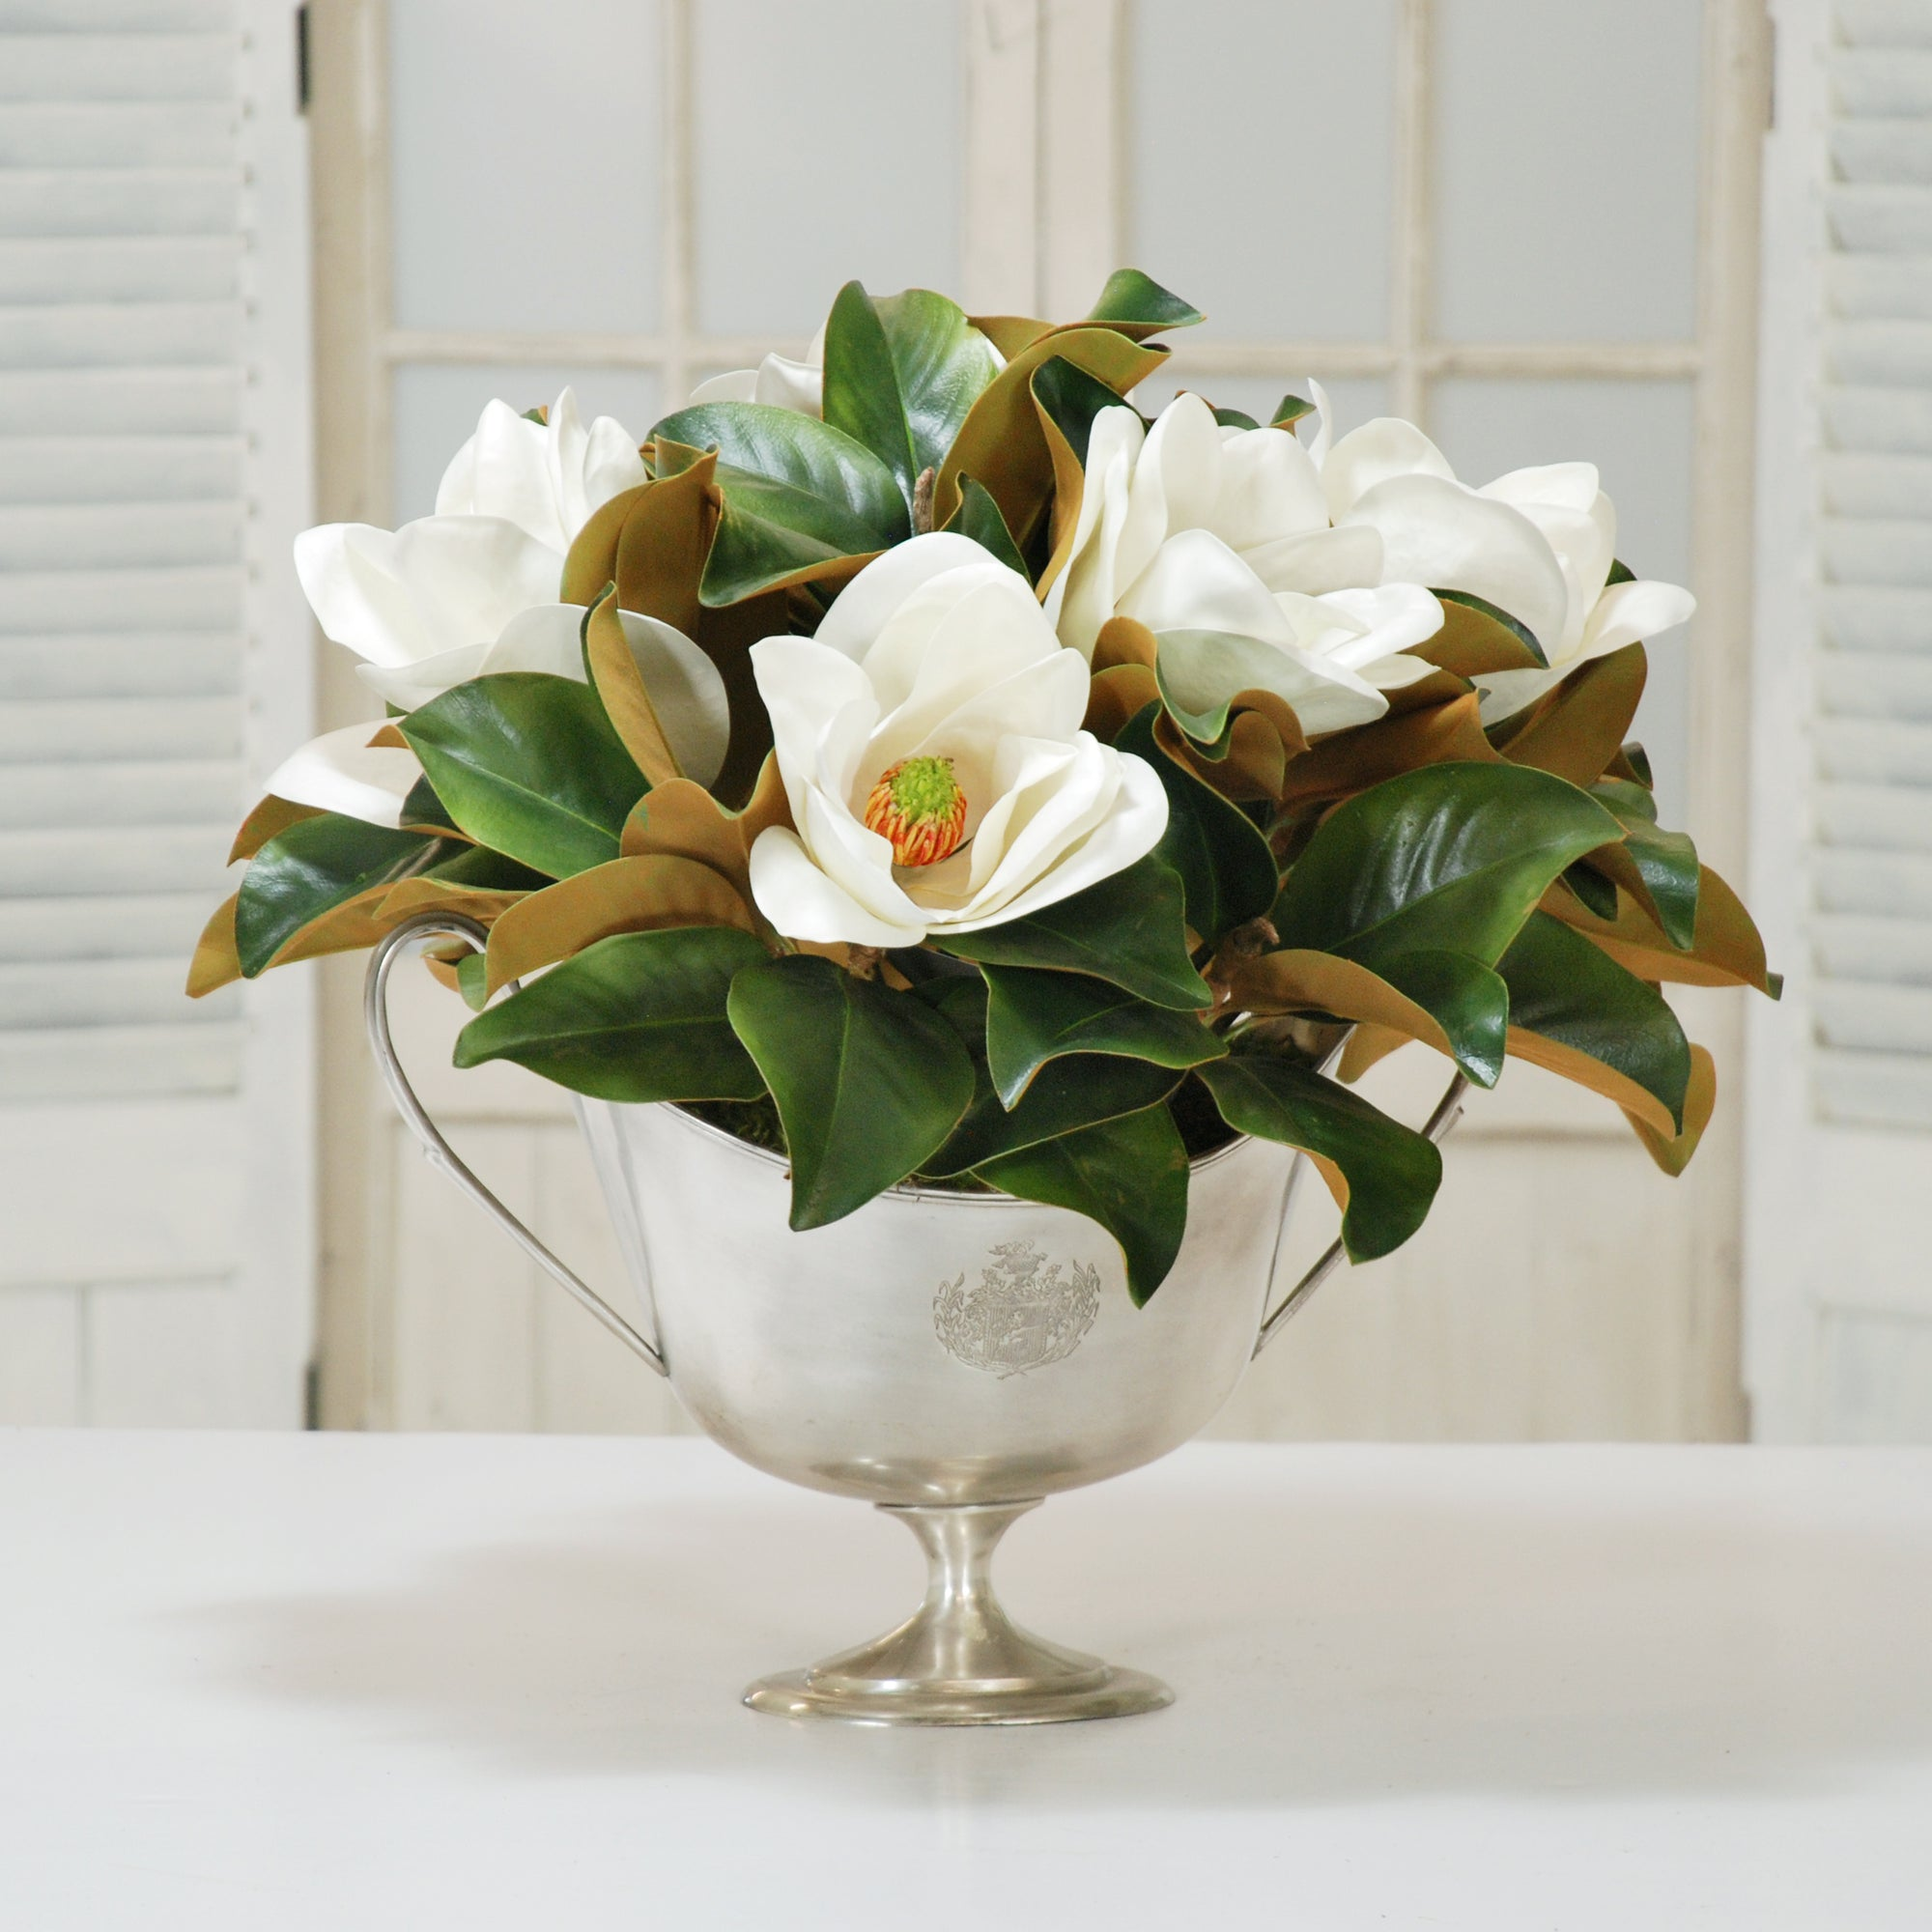 MAGNOLIA CENTERPIECE IN SILVER TROPHY CUP (DP700-WHGR)